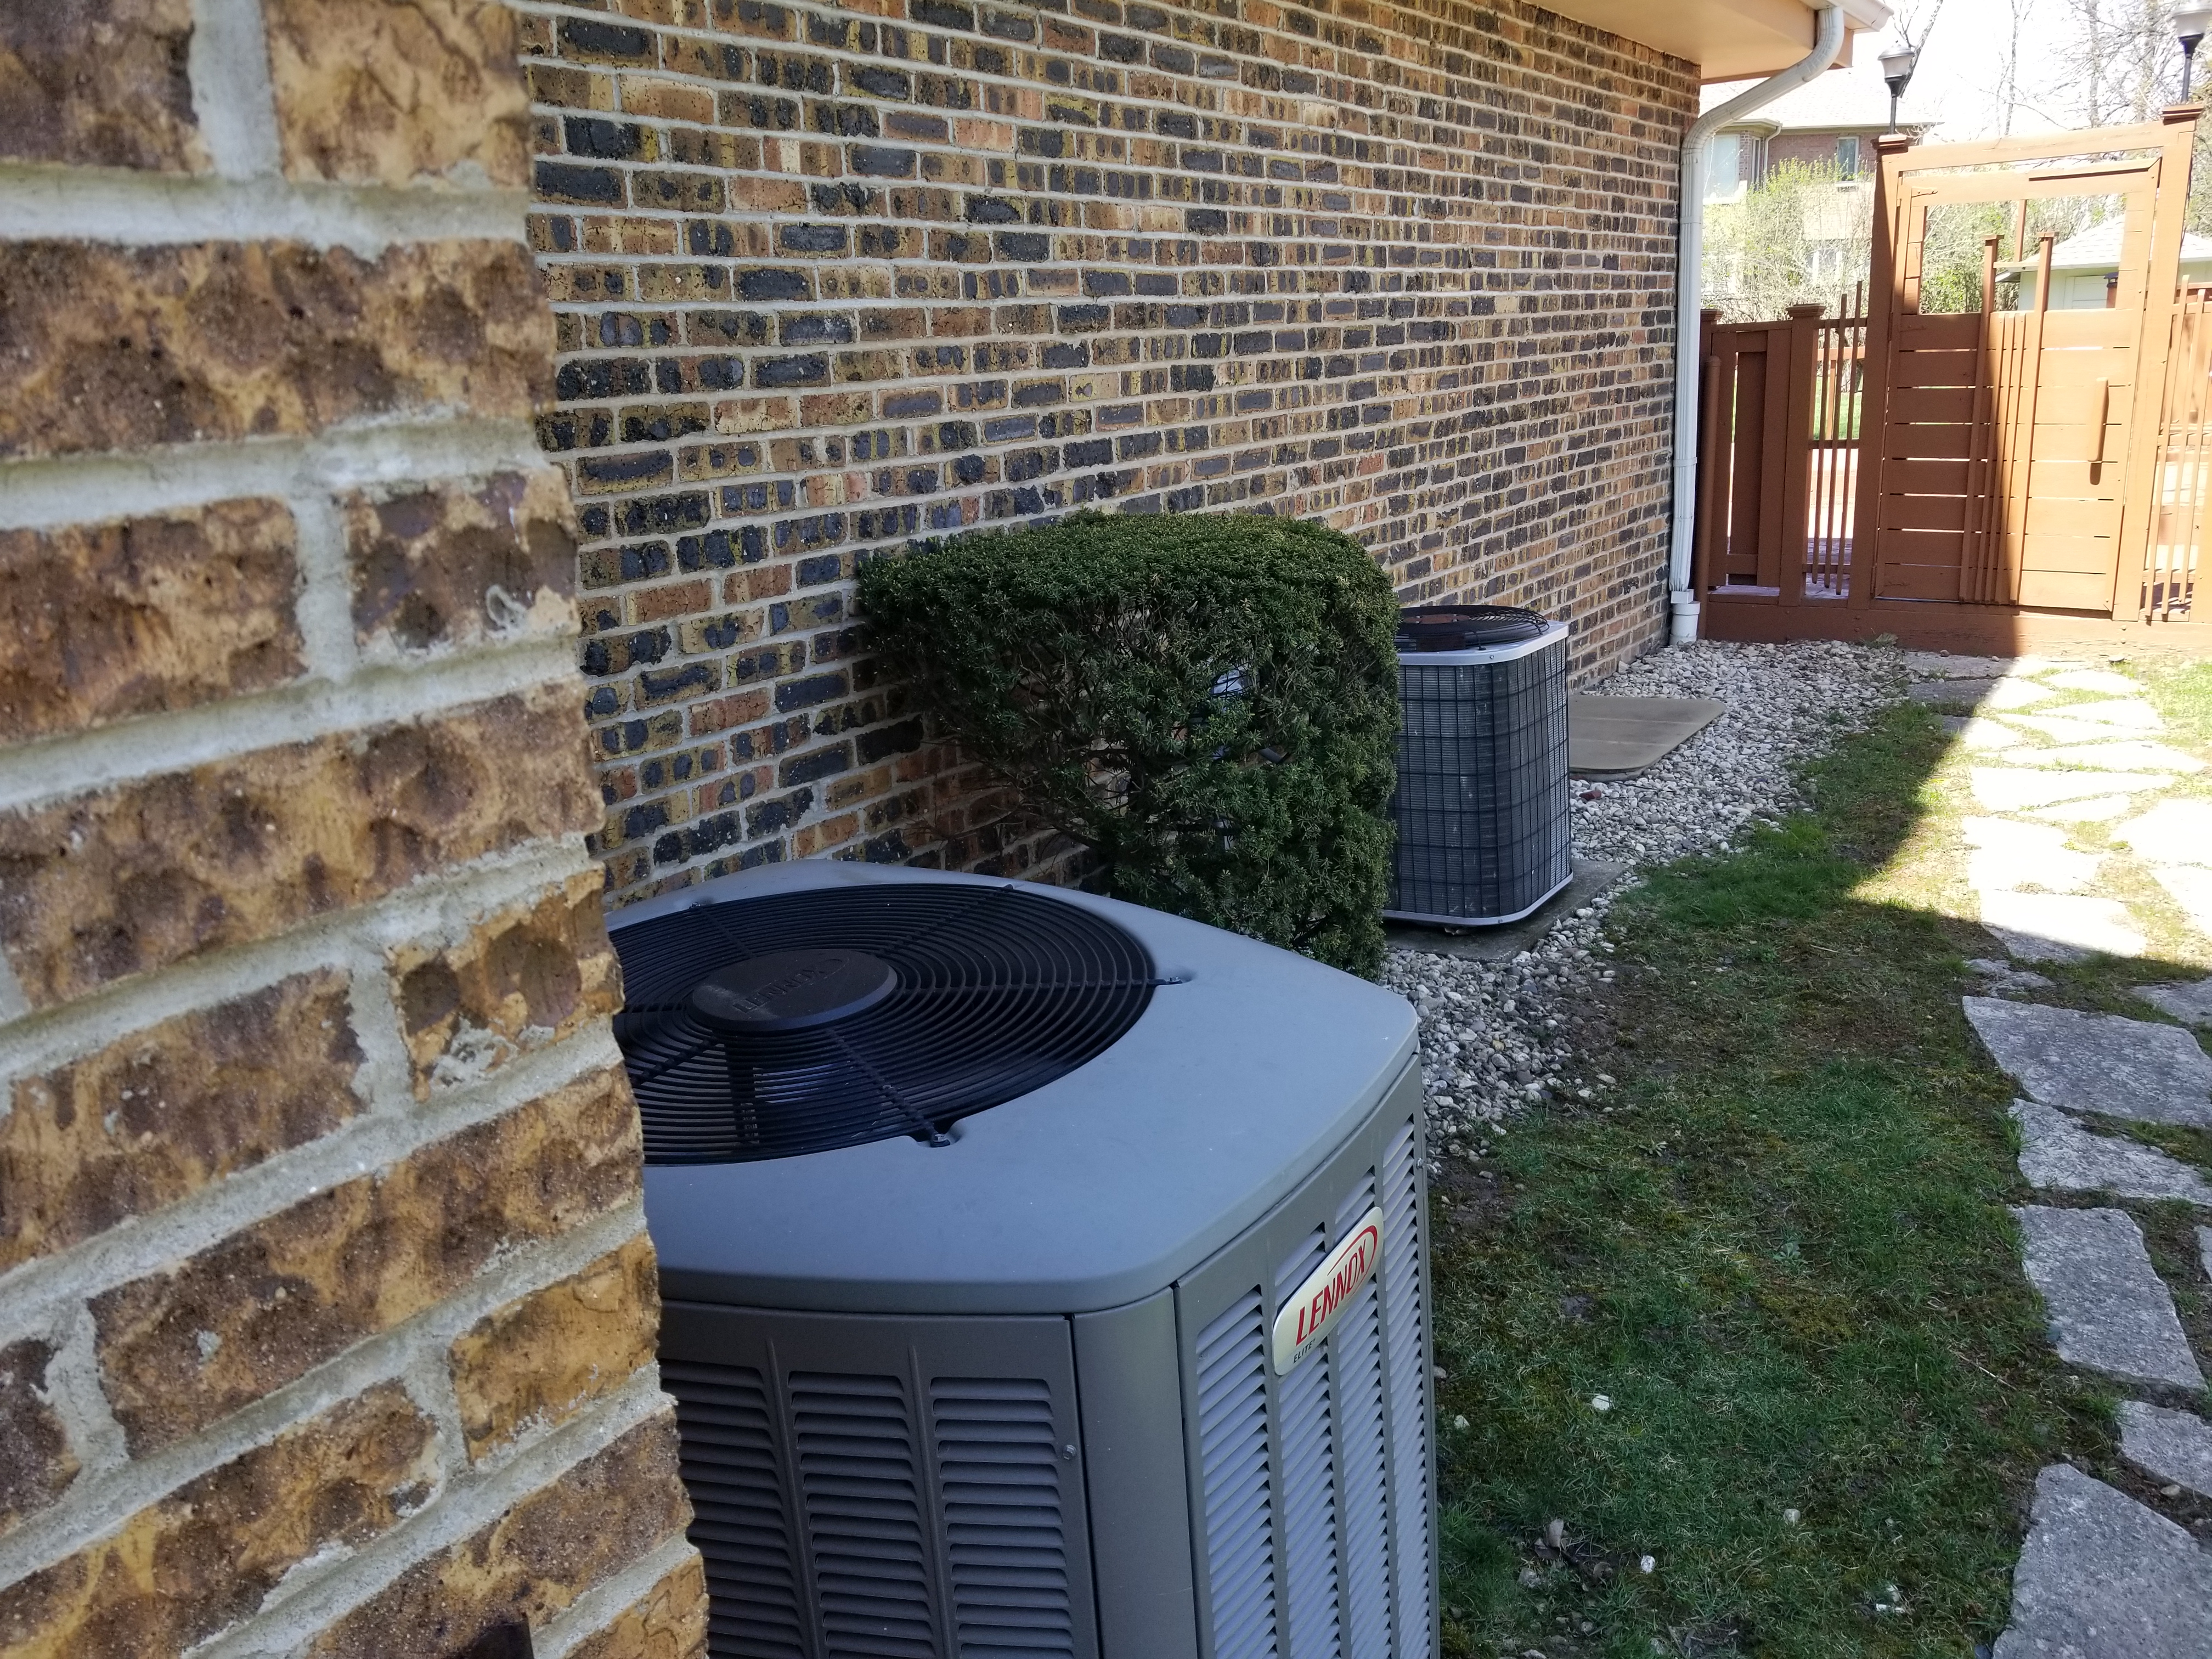 Performed annual maintenance on the Carrier and Lennox Air-conditioning systems and made adjustments to improve the overall efficiency and life expectancy of the equipment